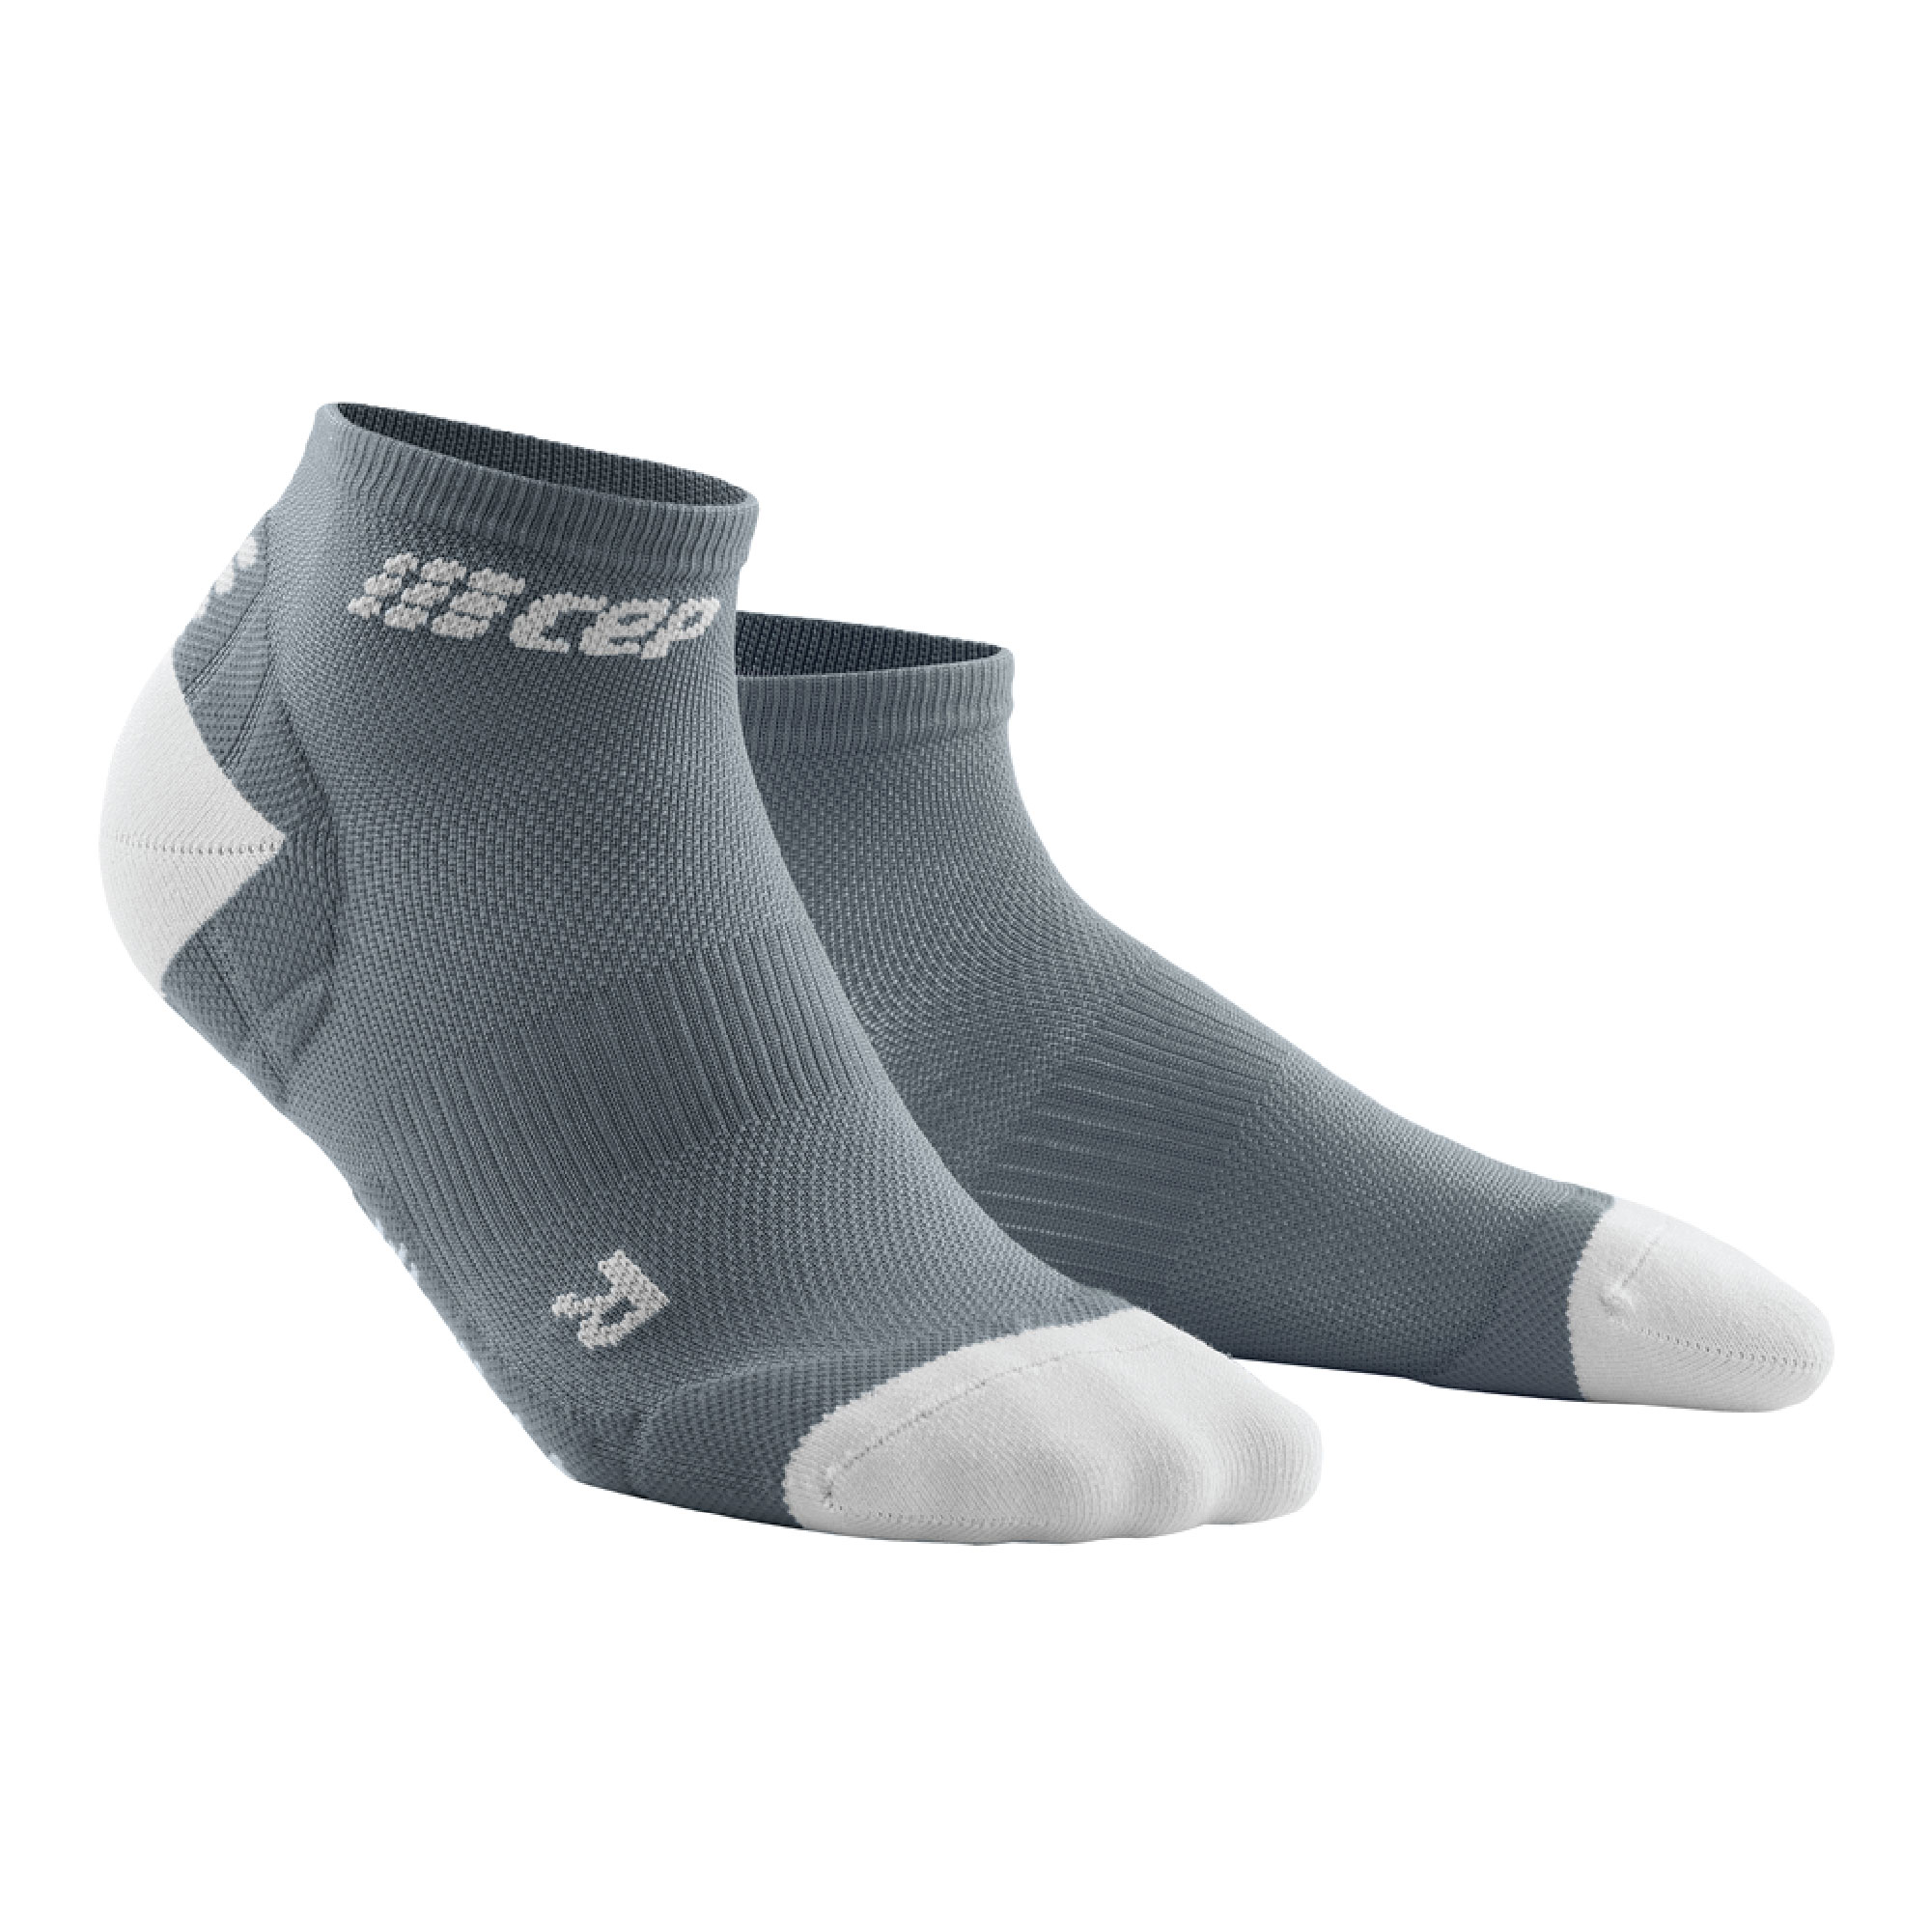 ULTRALIGHT LOW CUT SOCKS | MEN